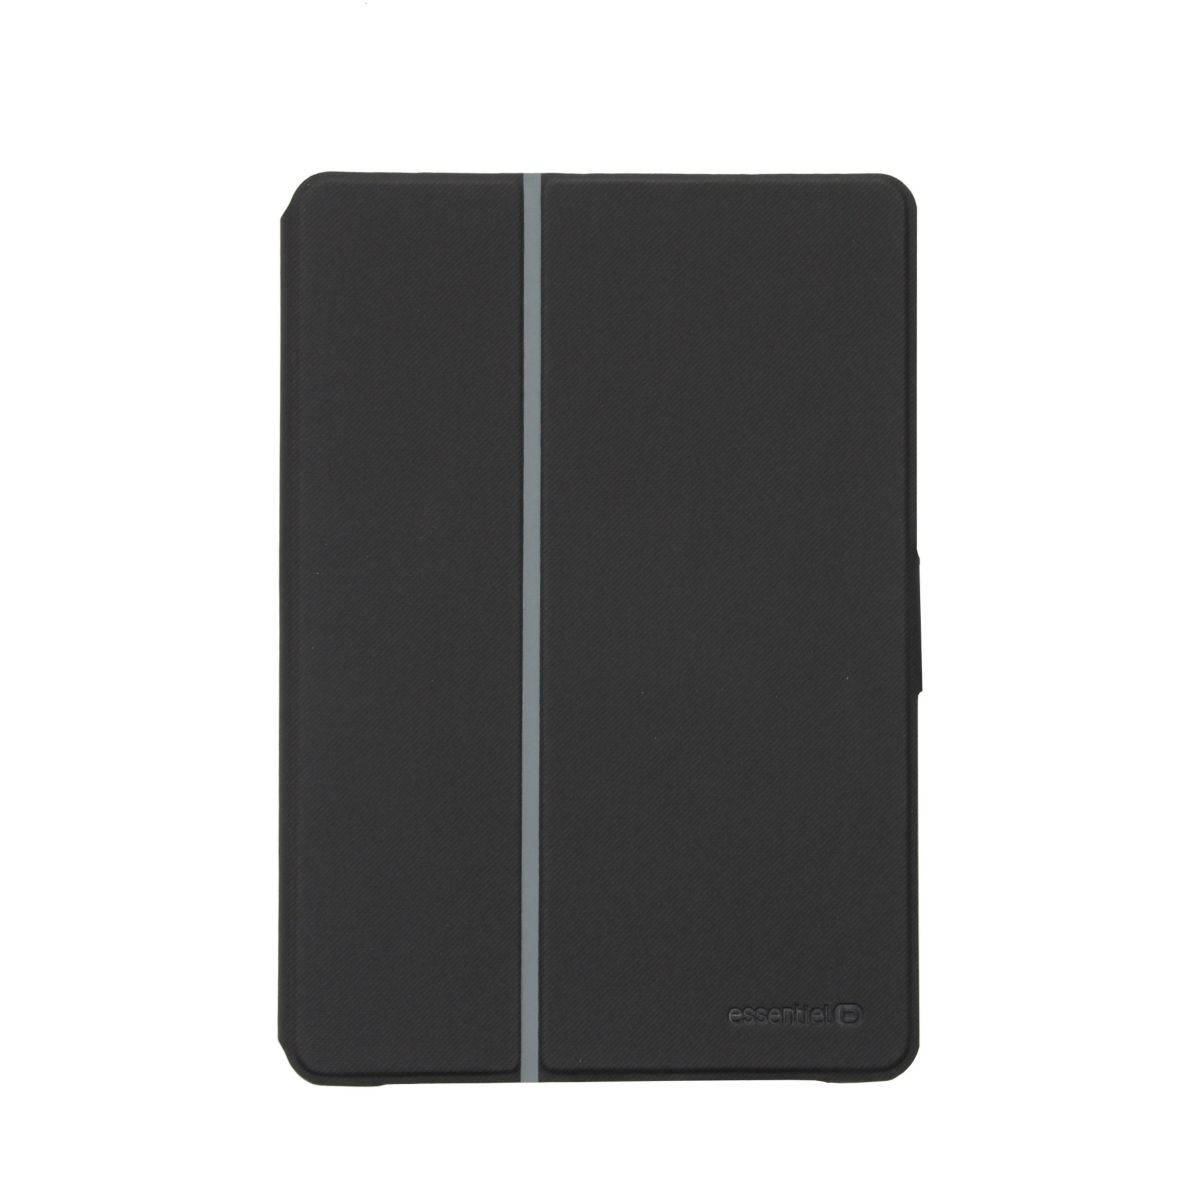 Etui ESSENTIELB rotatif iPad Air noir (photo)